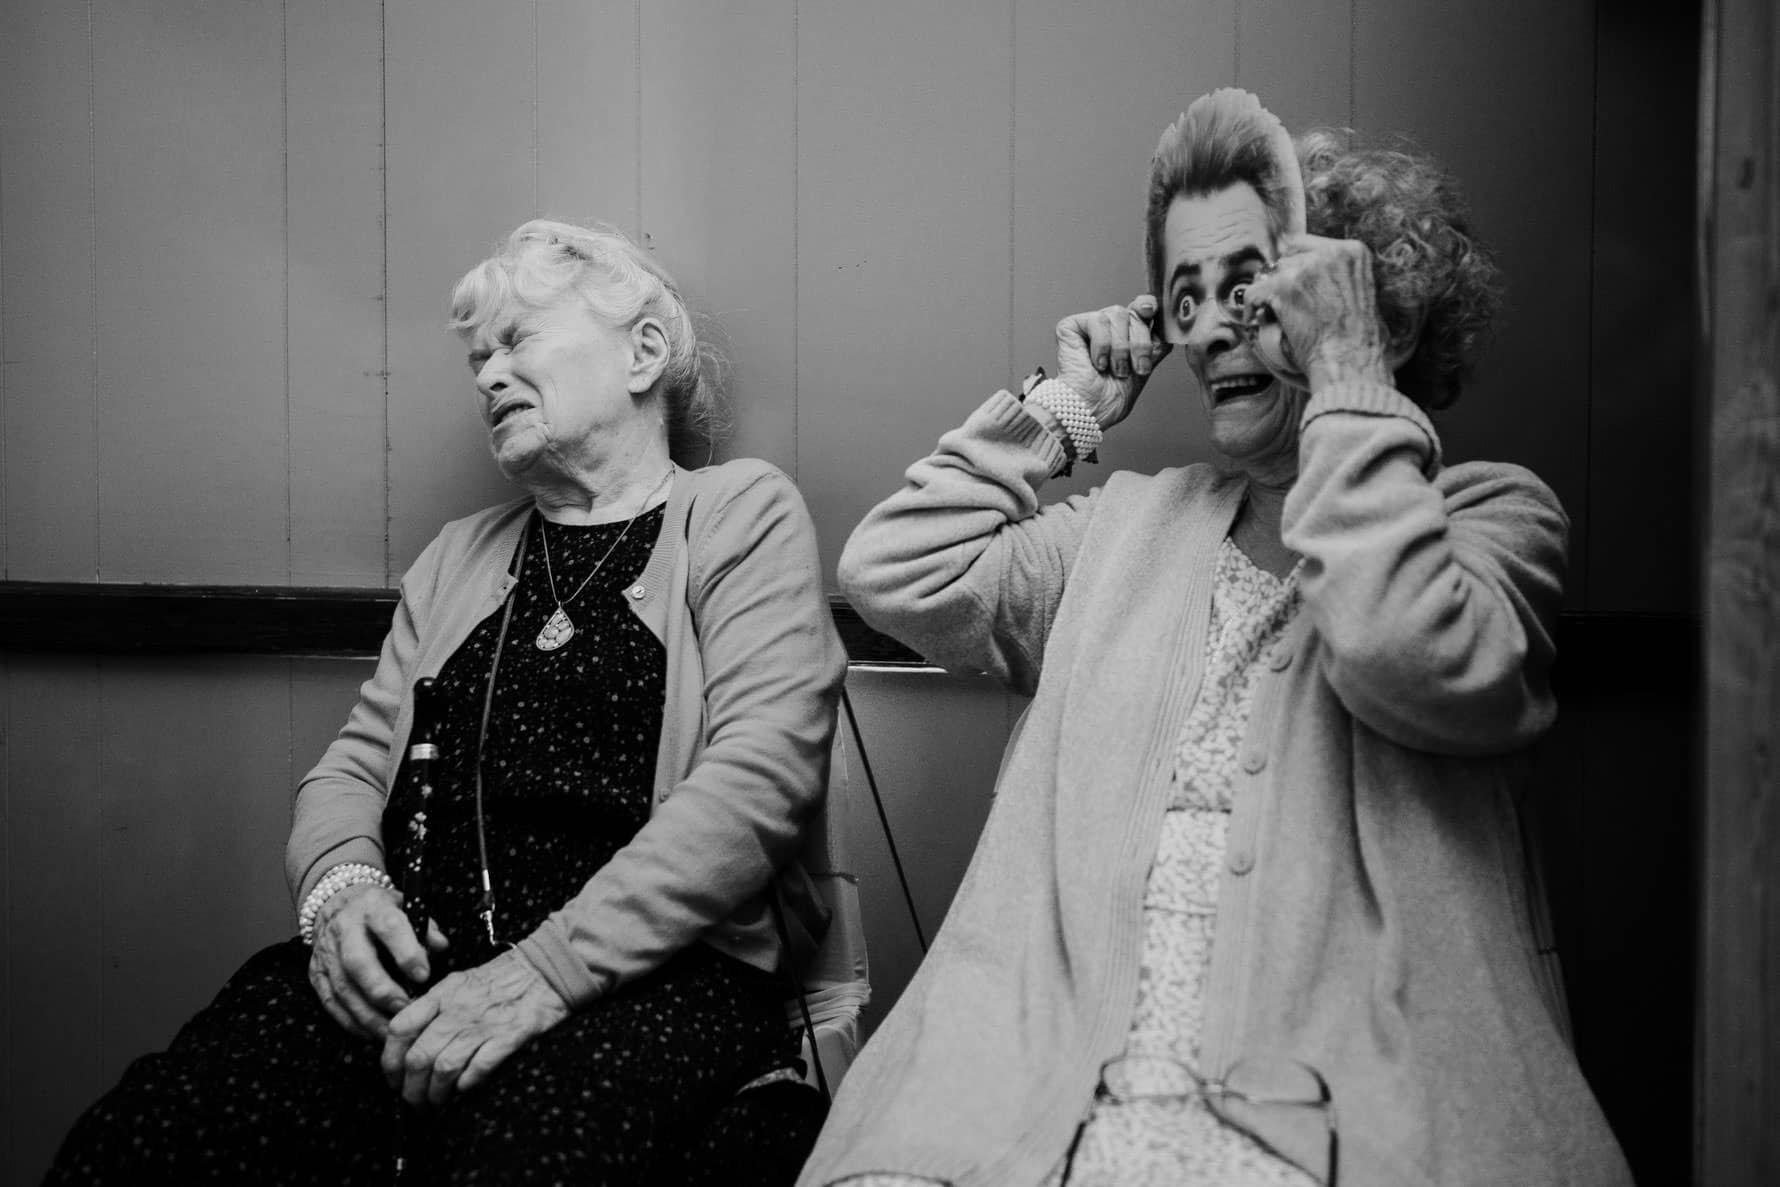 two ladies at a wedding reception, one wearing a mask to make the other one laugh